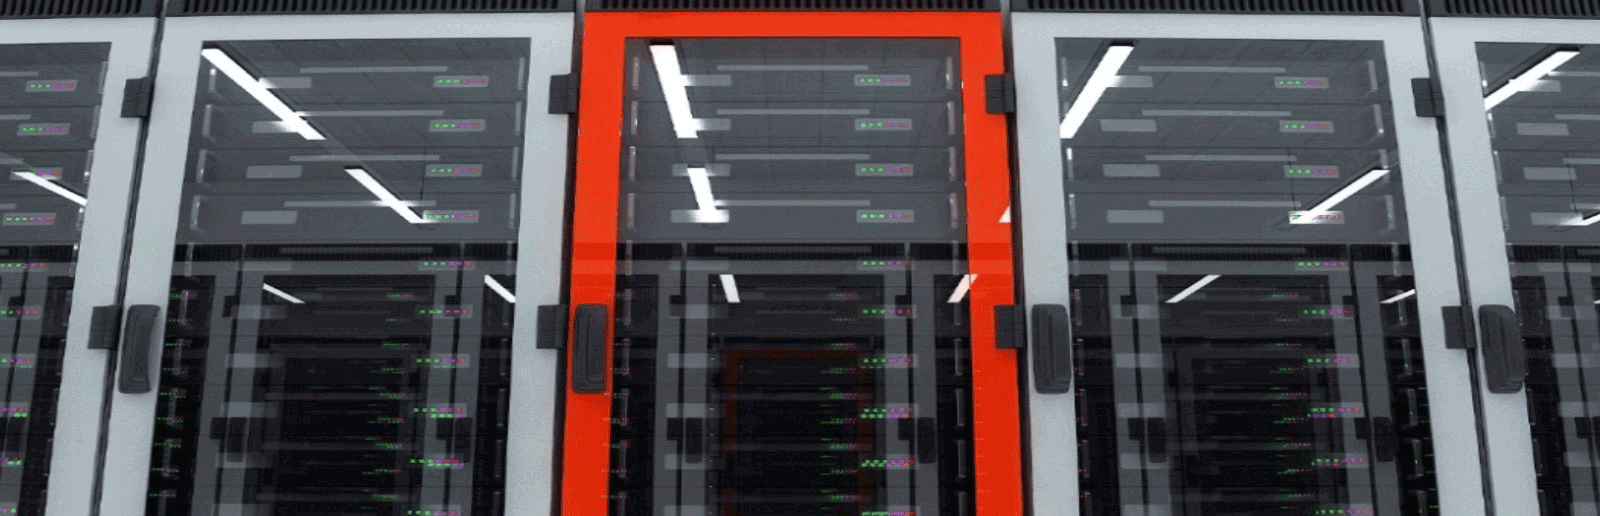 Enterprise NAS Storage Solution for Big Data Storage Challenges 110